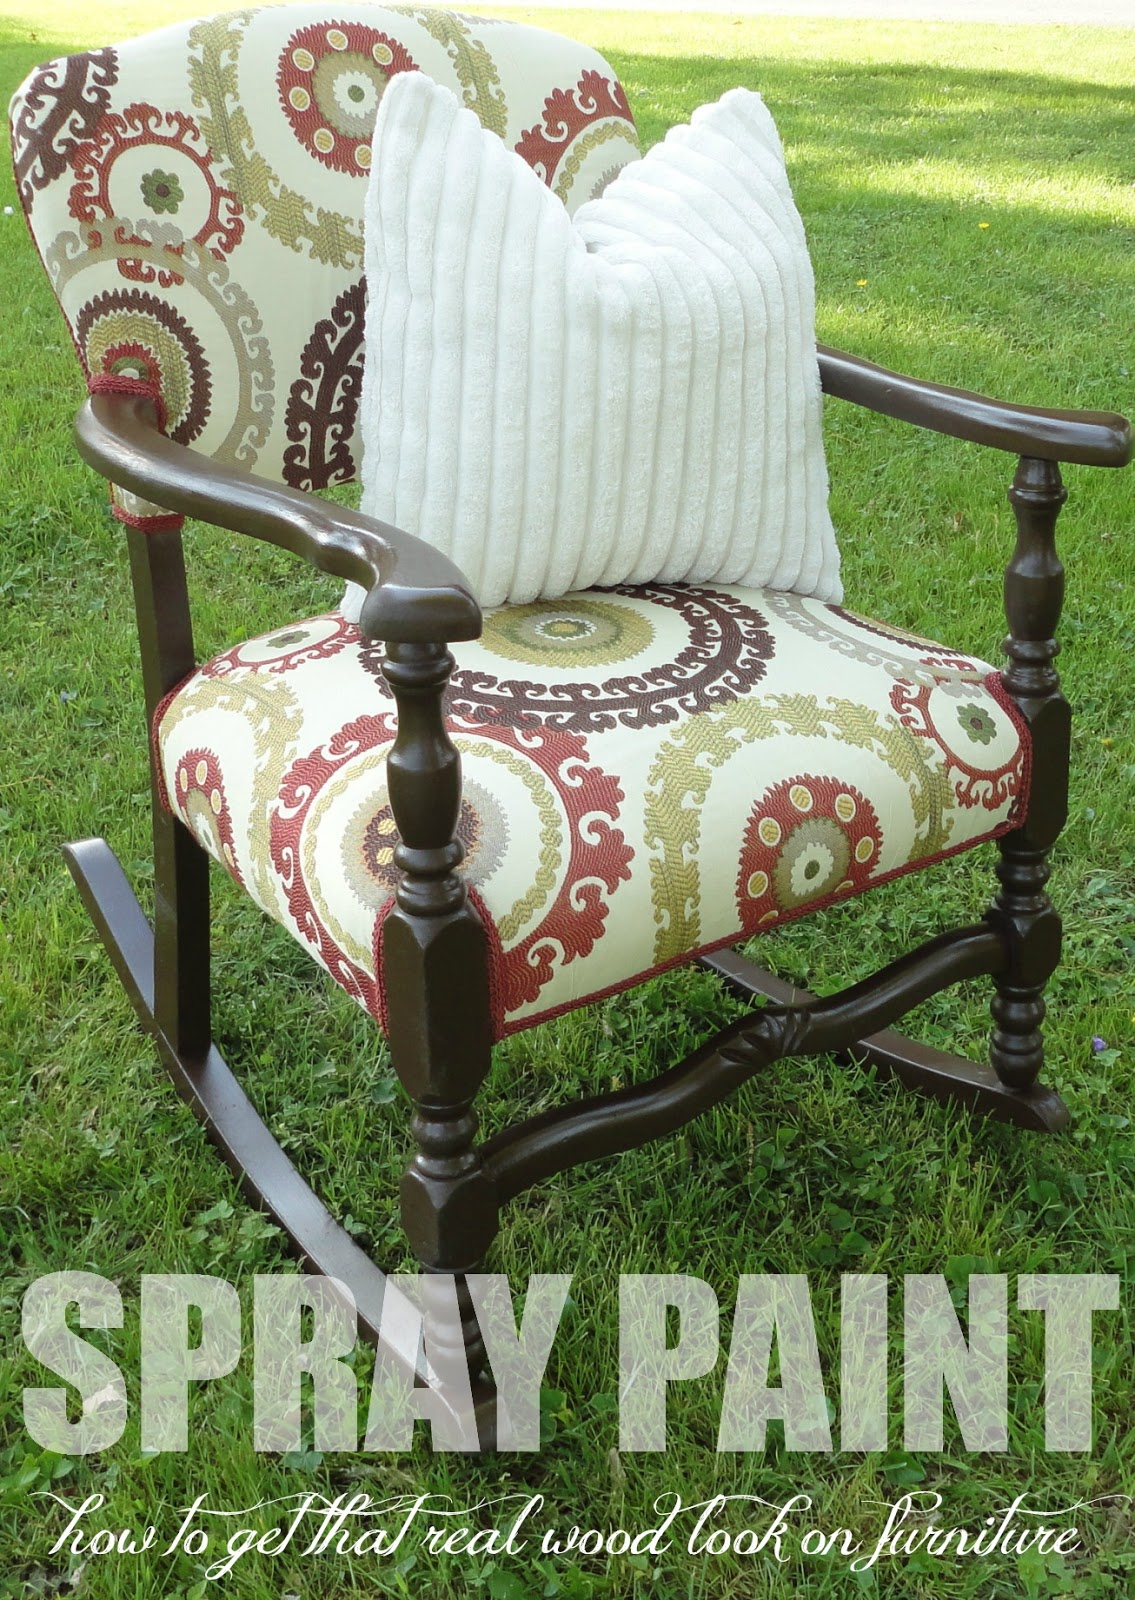 Nice Outdoor Spray Paint For Wood Part 10 Livelovediy 10 Spray Paint Tips